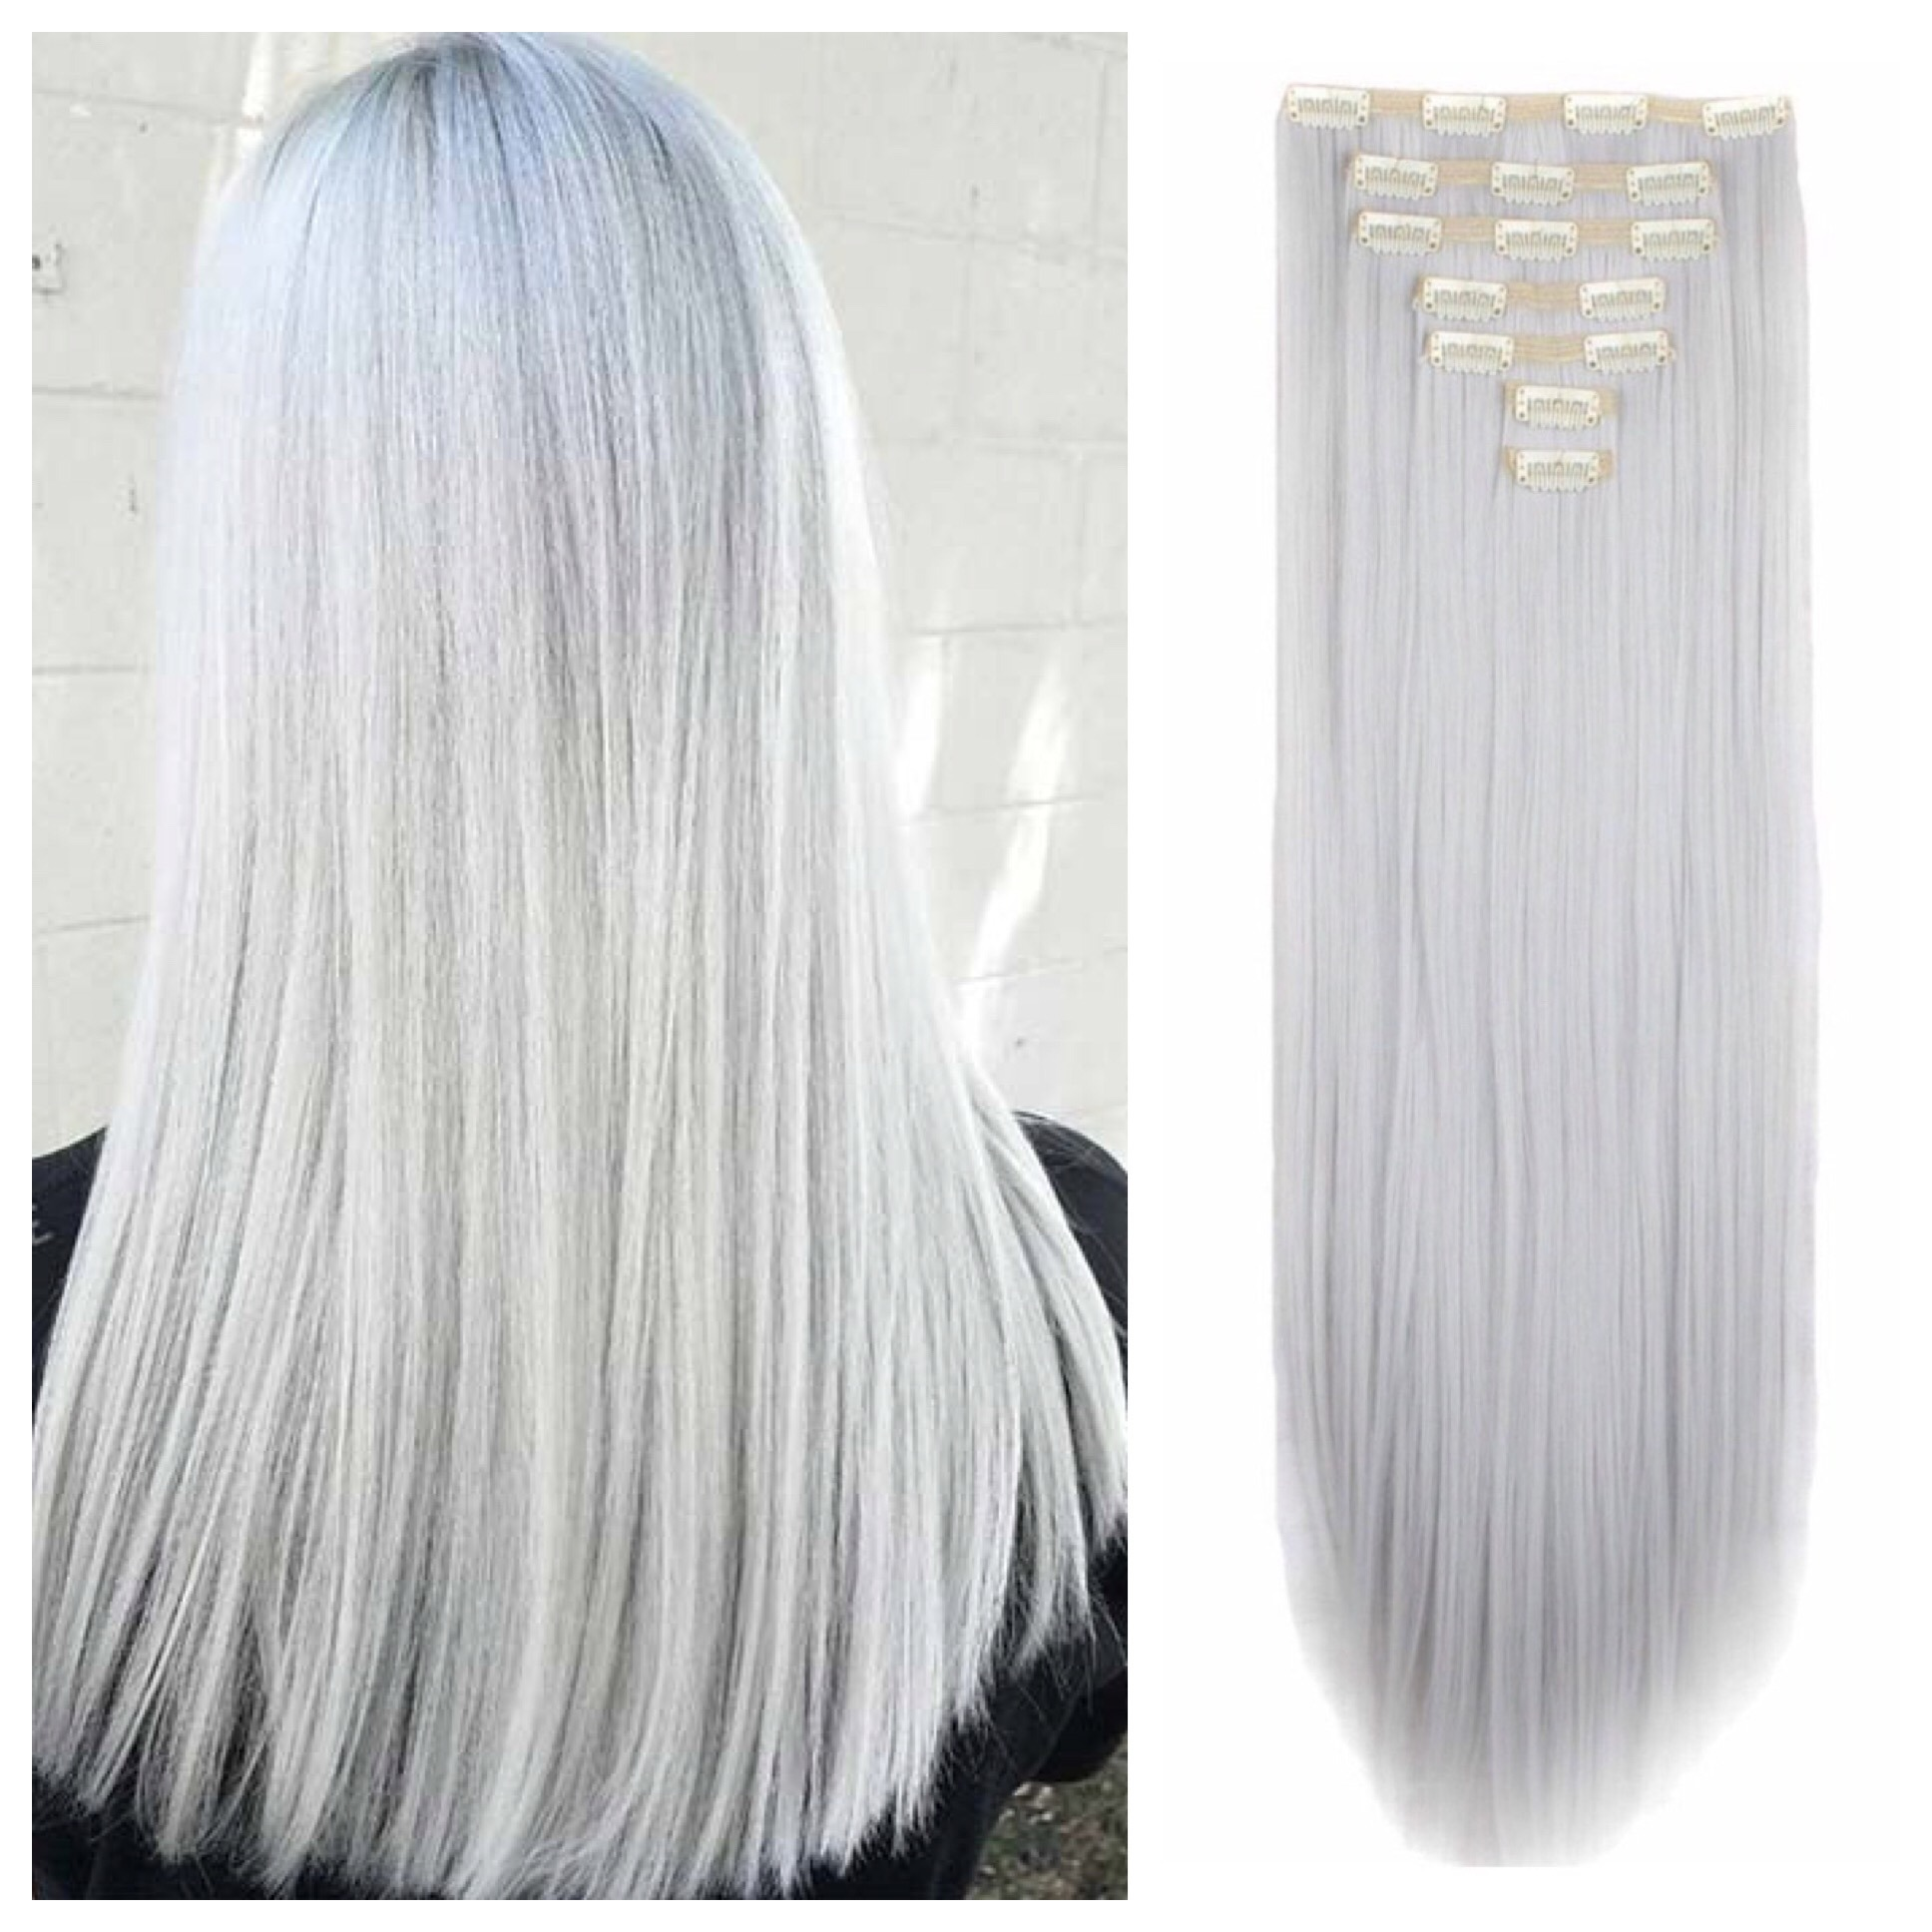 Grey Clip In Hair Extensions 26 Remy Human Hair 200g Double Weft